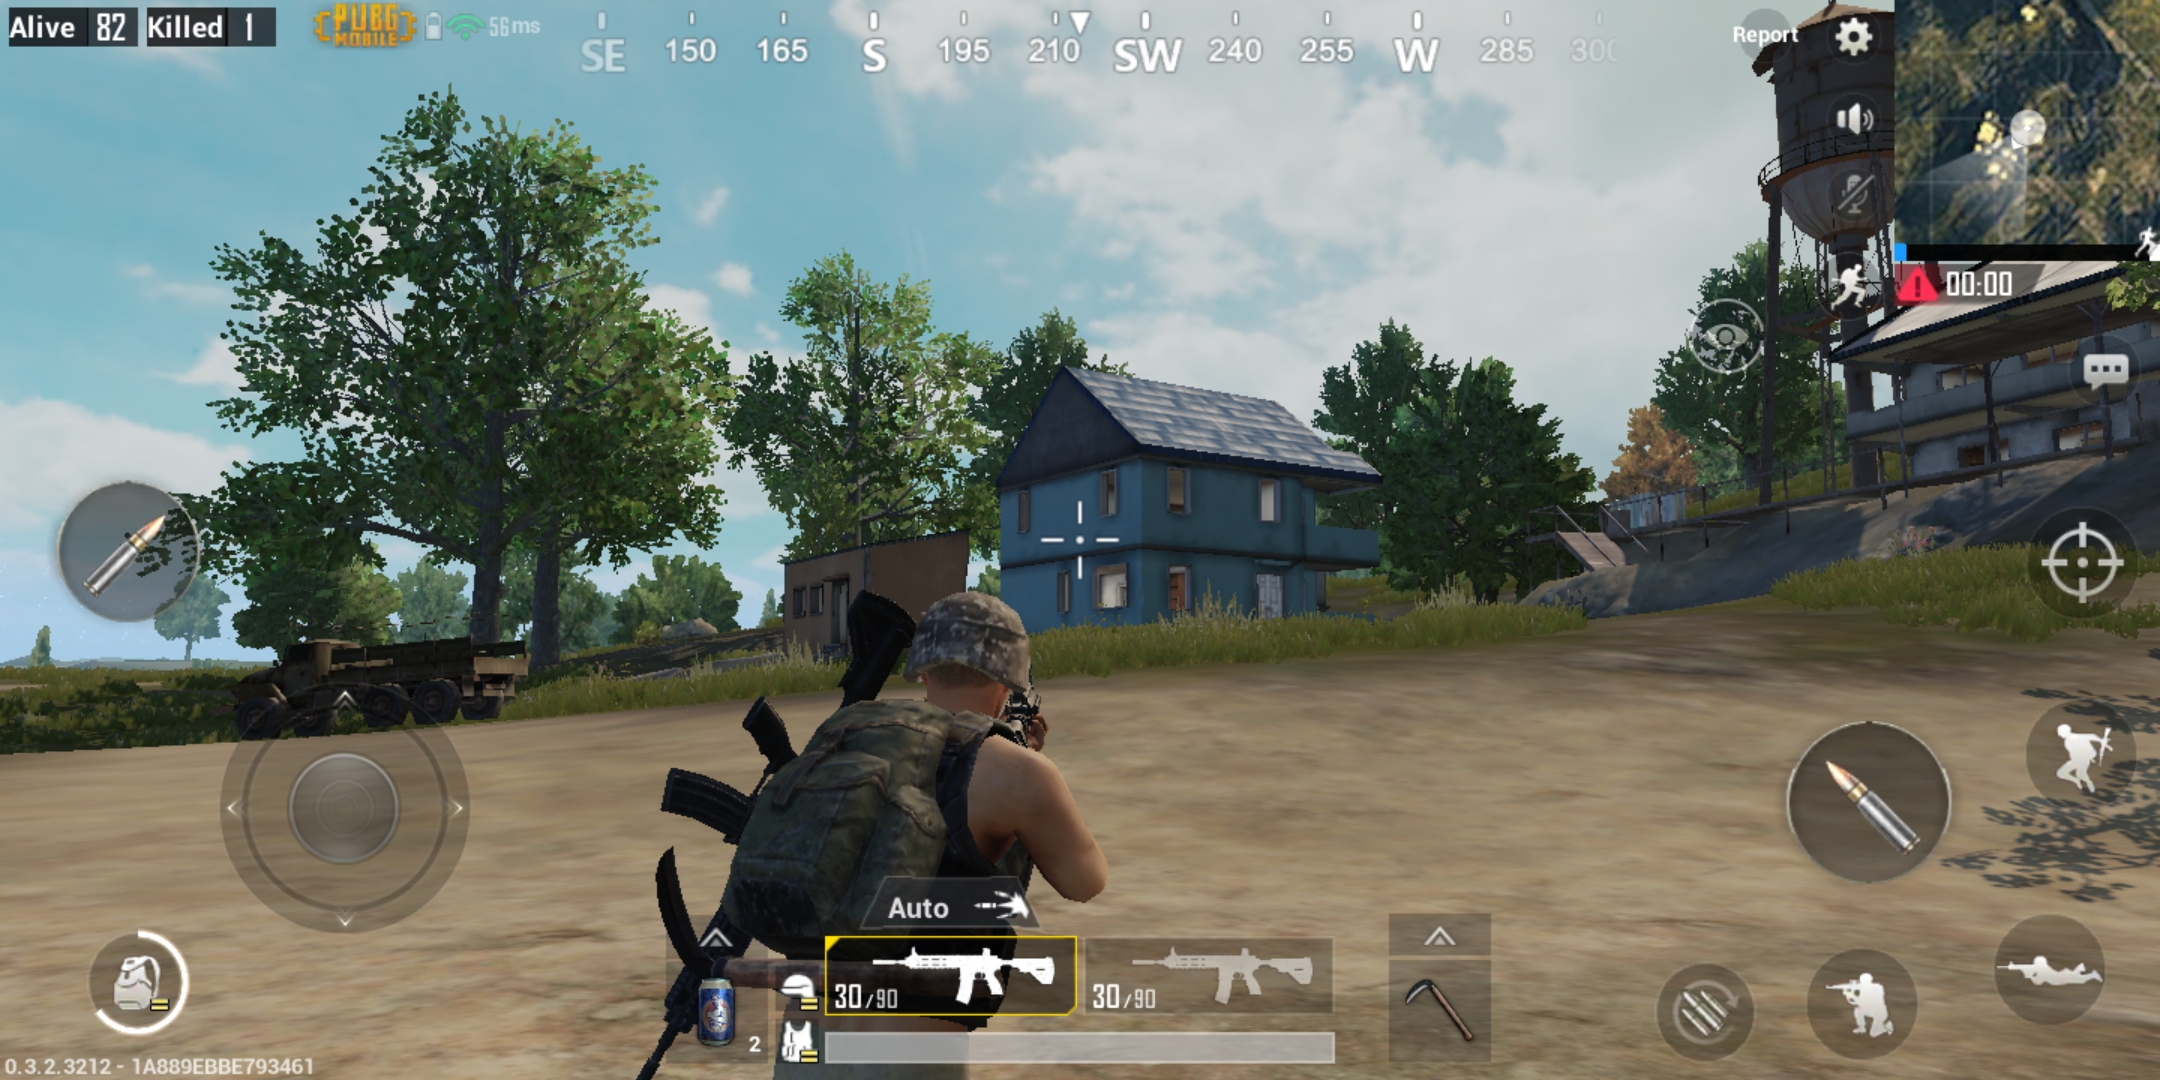 Pubg Online close your lids Games Free of charge Pubg